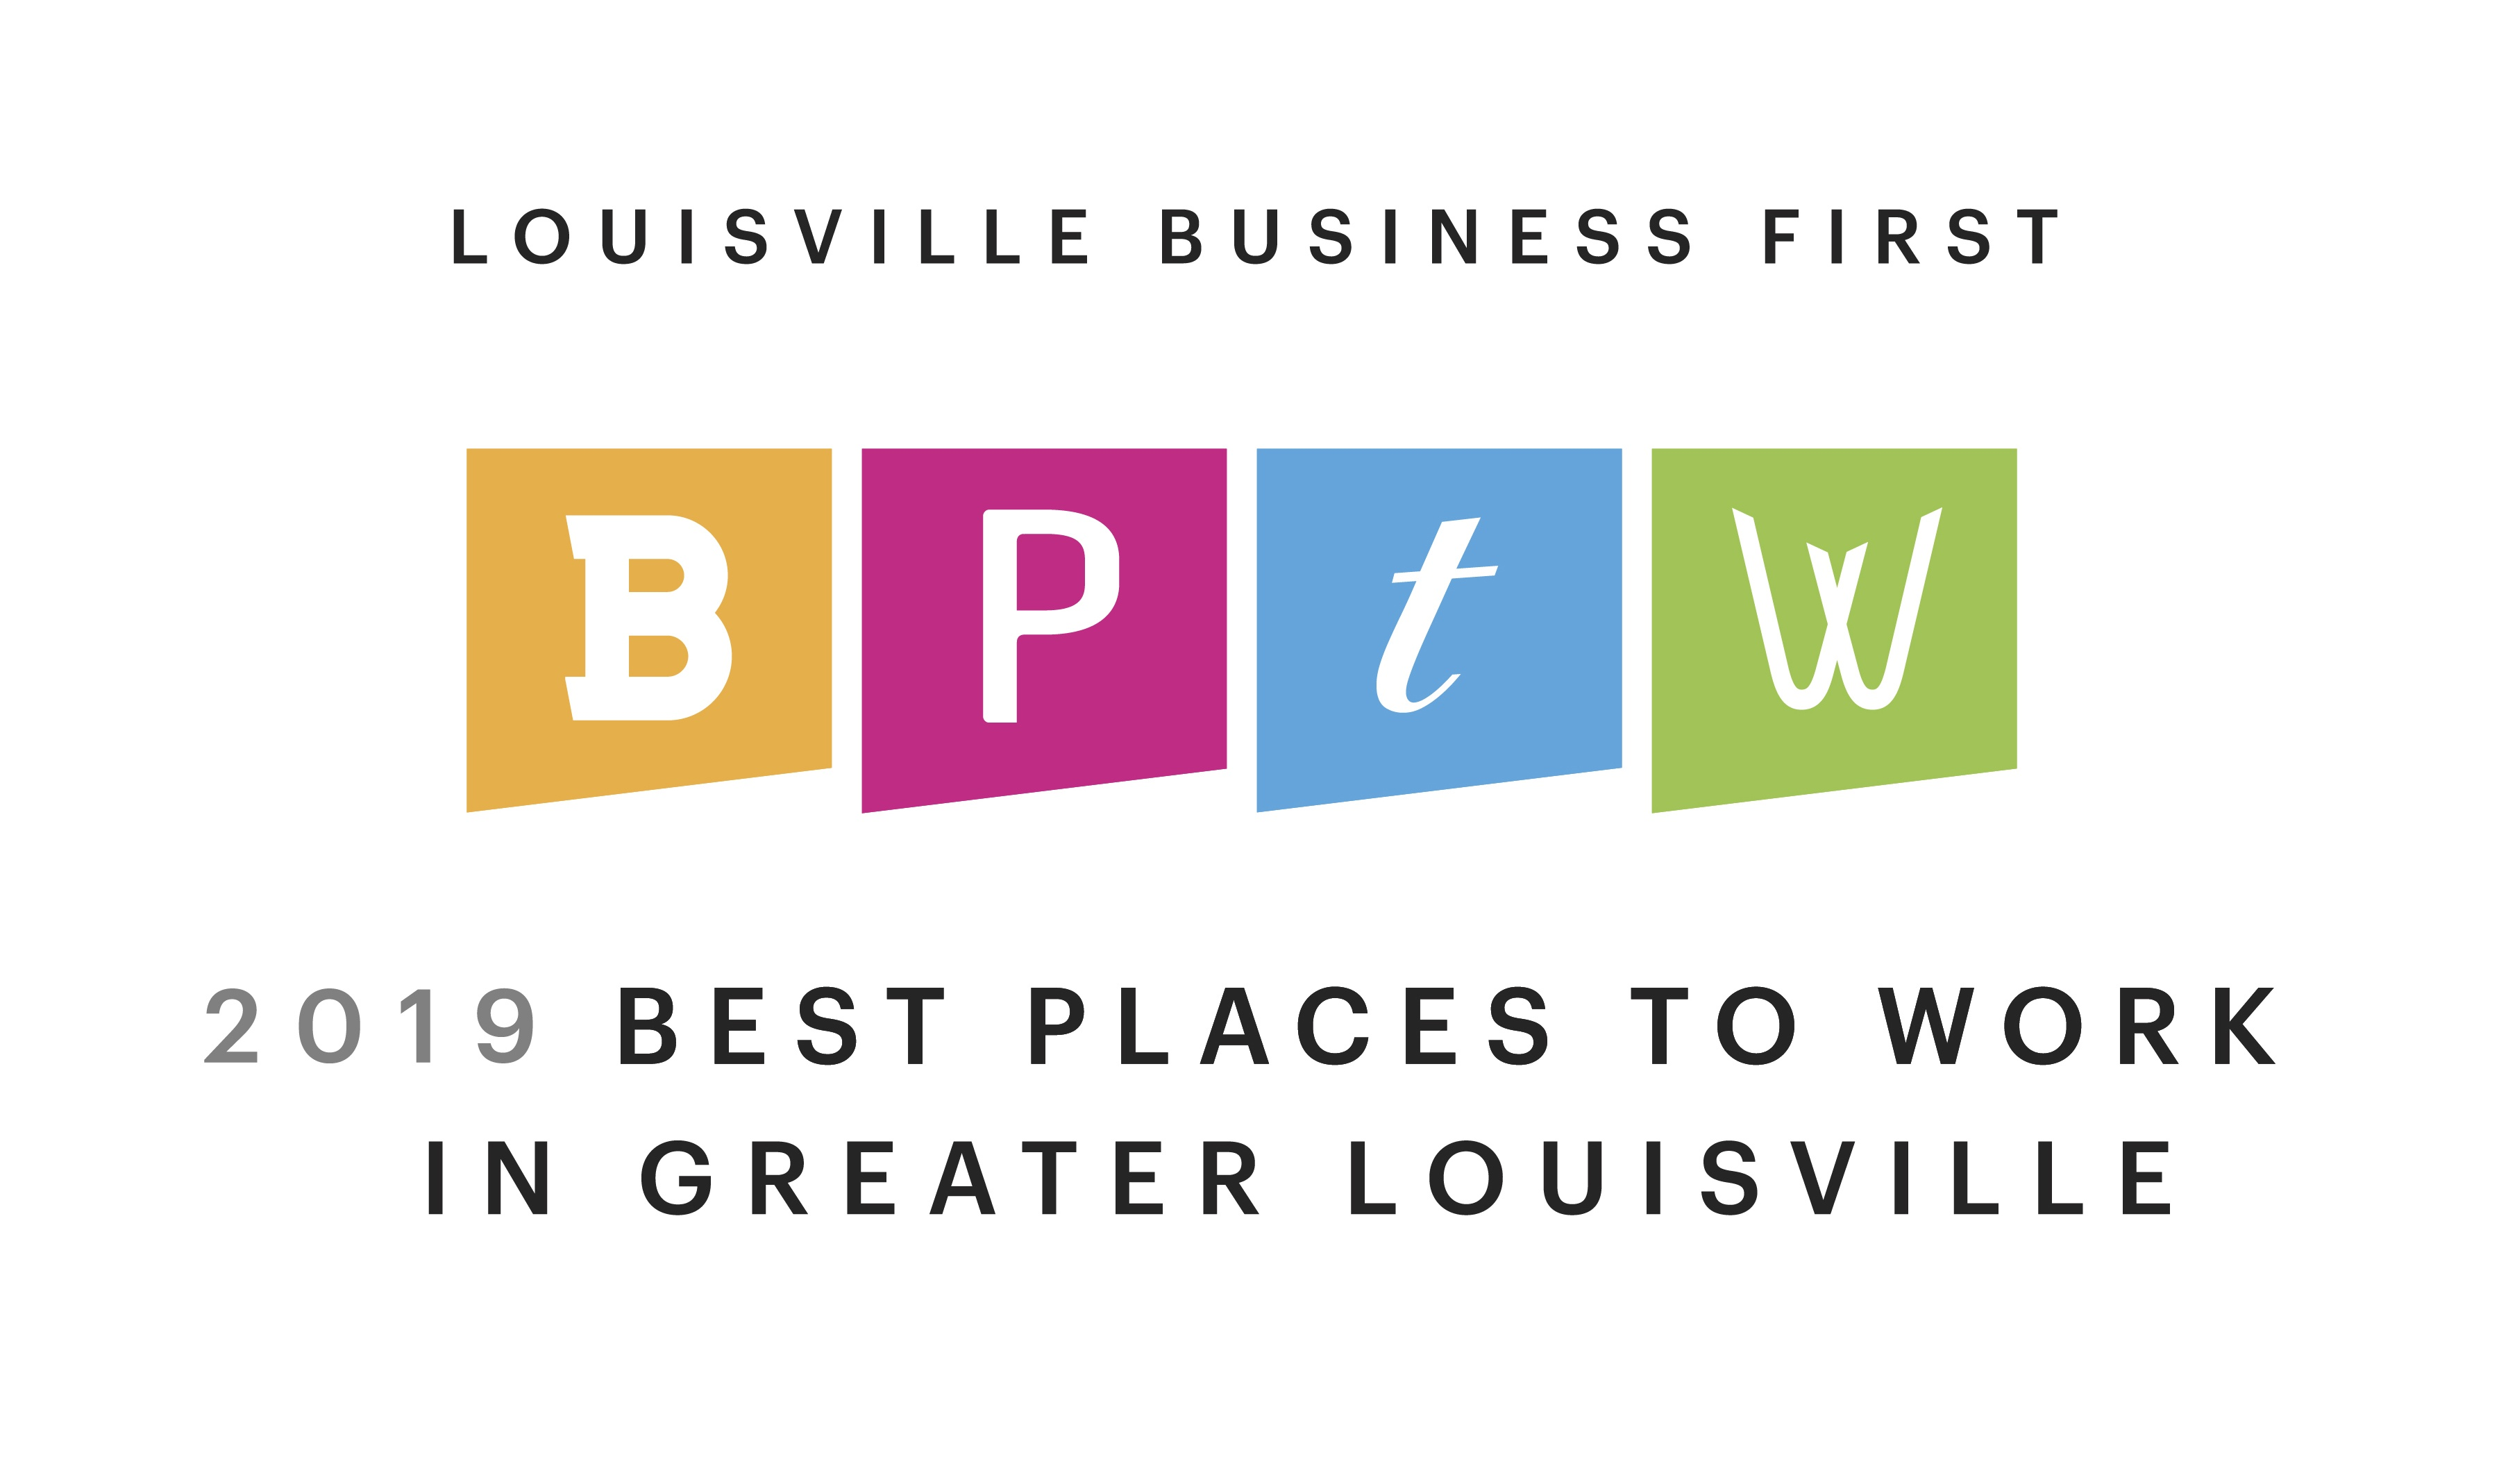 Best Places to Work in lOUISVILLE